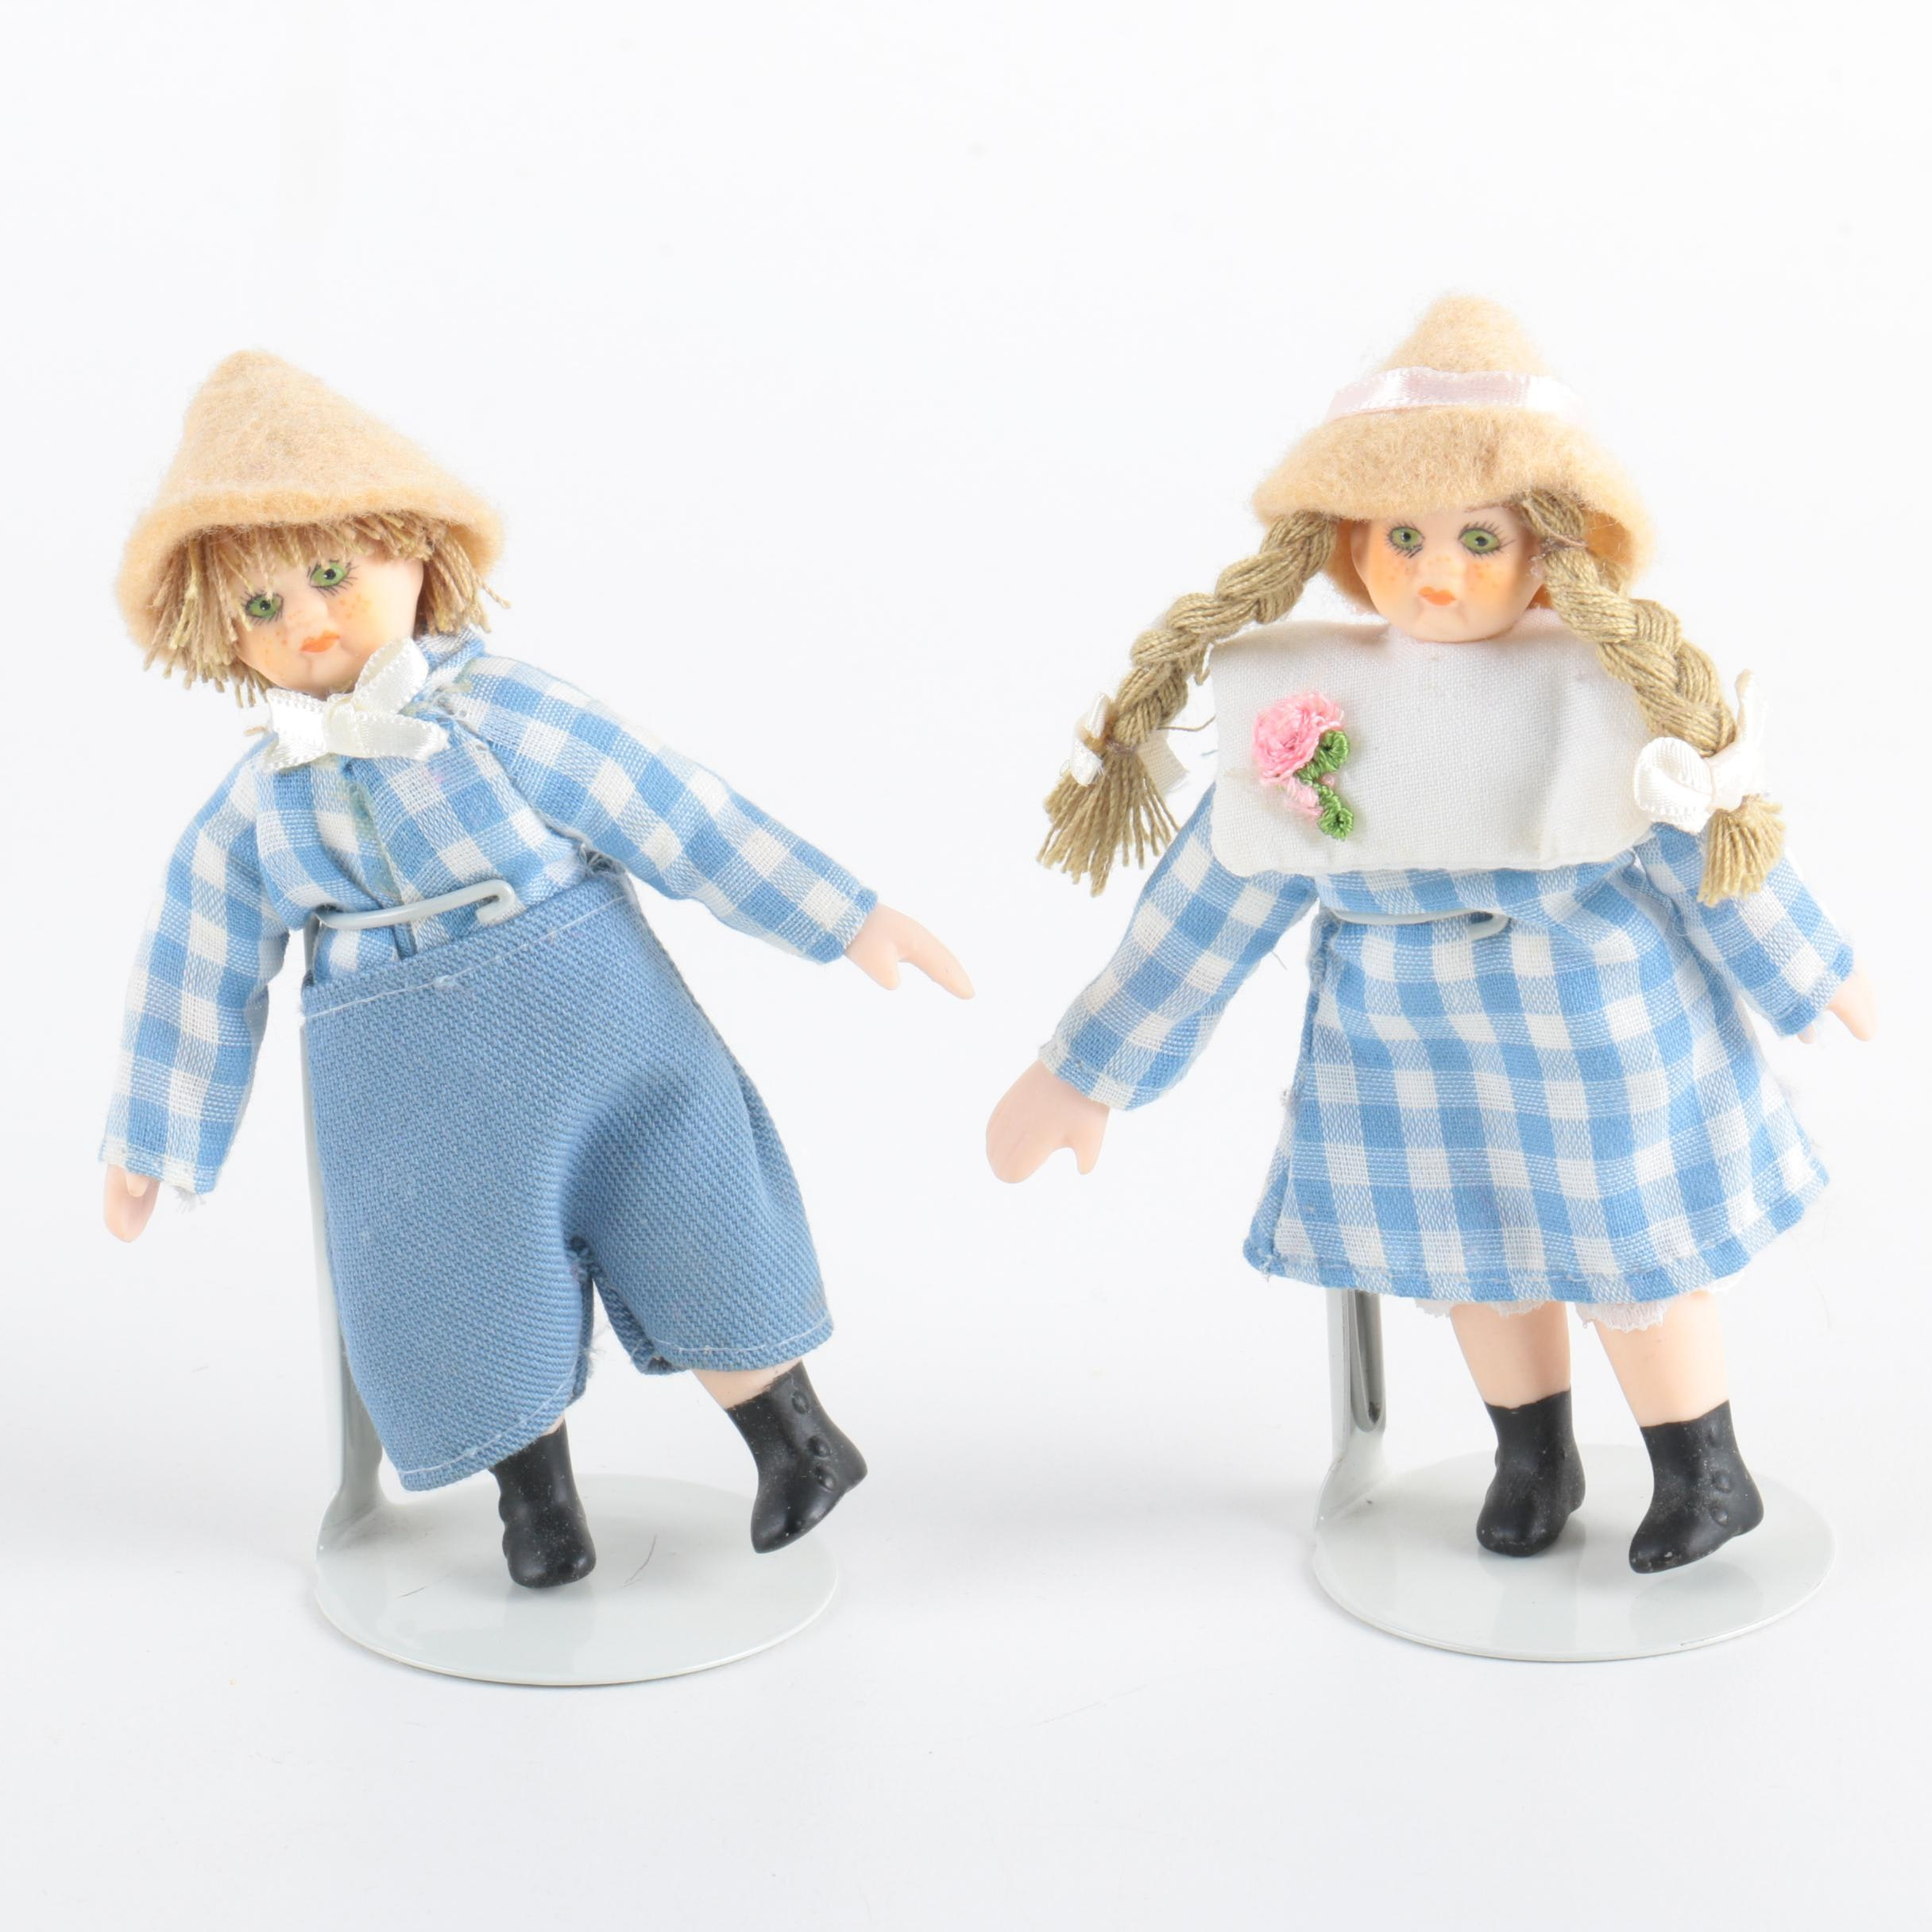 Dolls on Stands